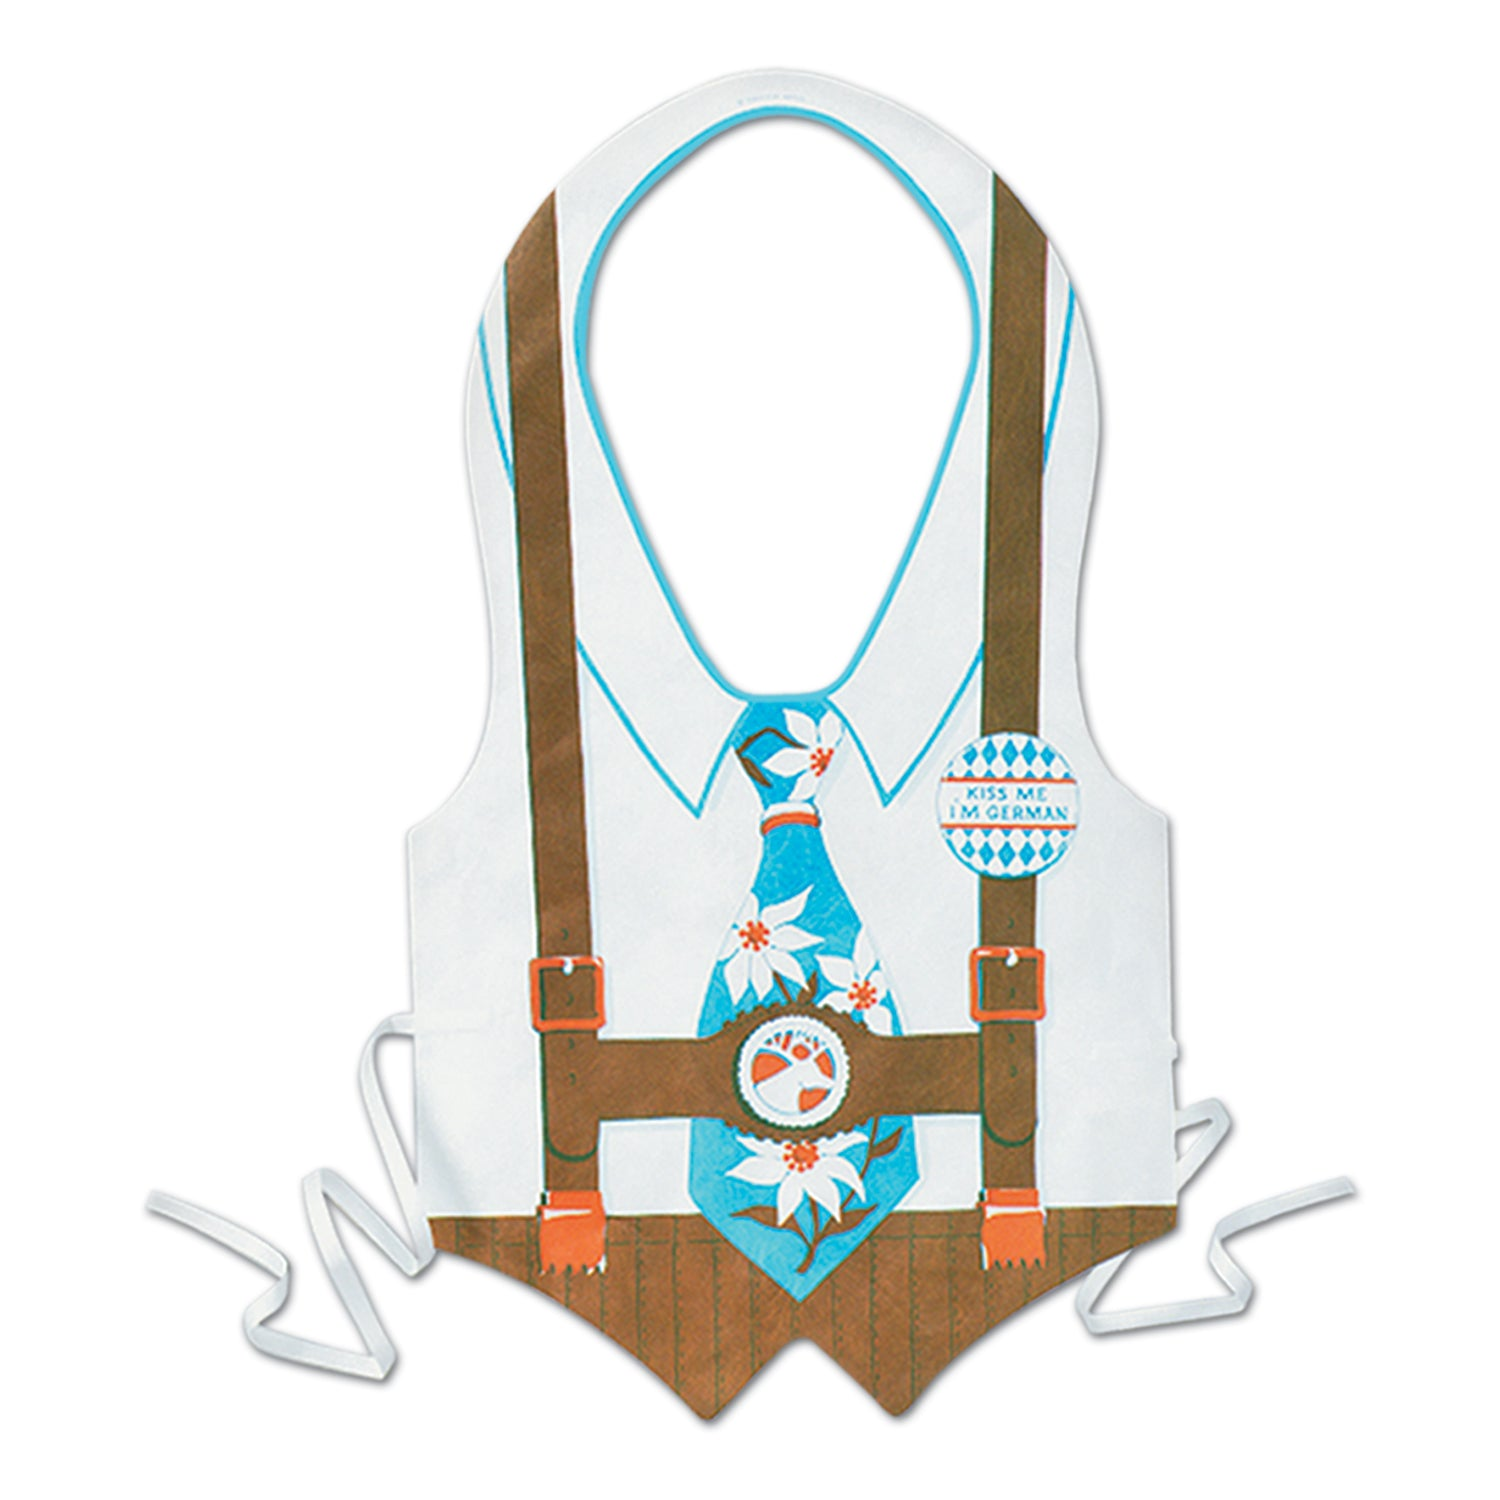 Plastic Oktoberfest Vest by Beistle - Oktoberfest Theme Decorations